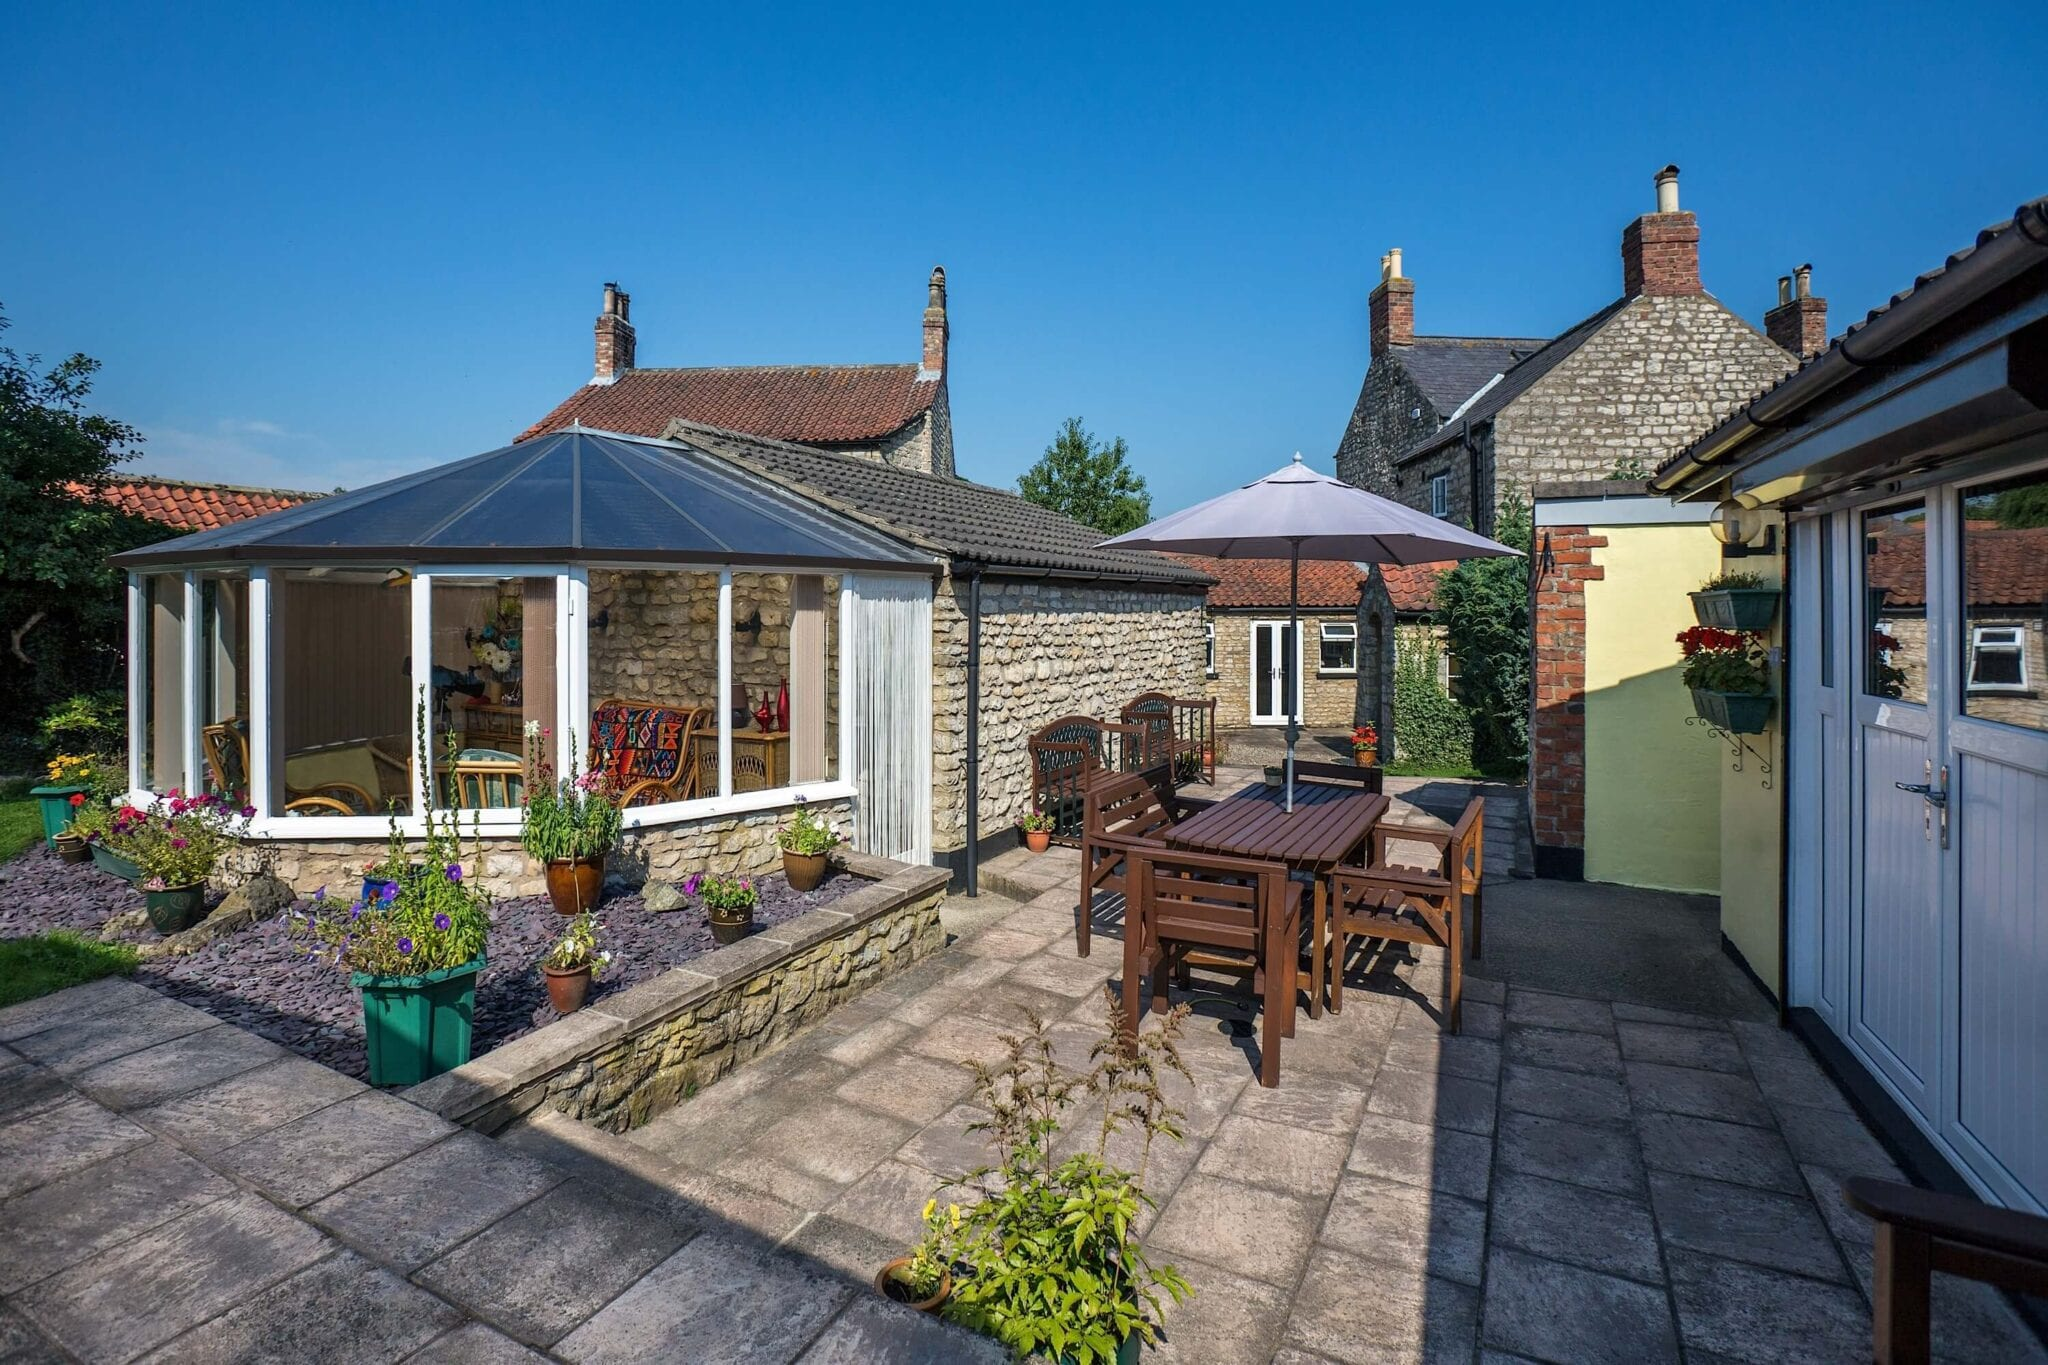 How to Clean a Conservatory Roof: Image of a cottage with a conservatory.